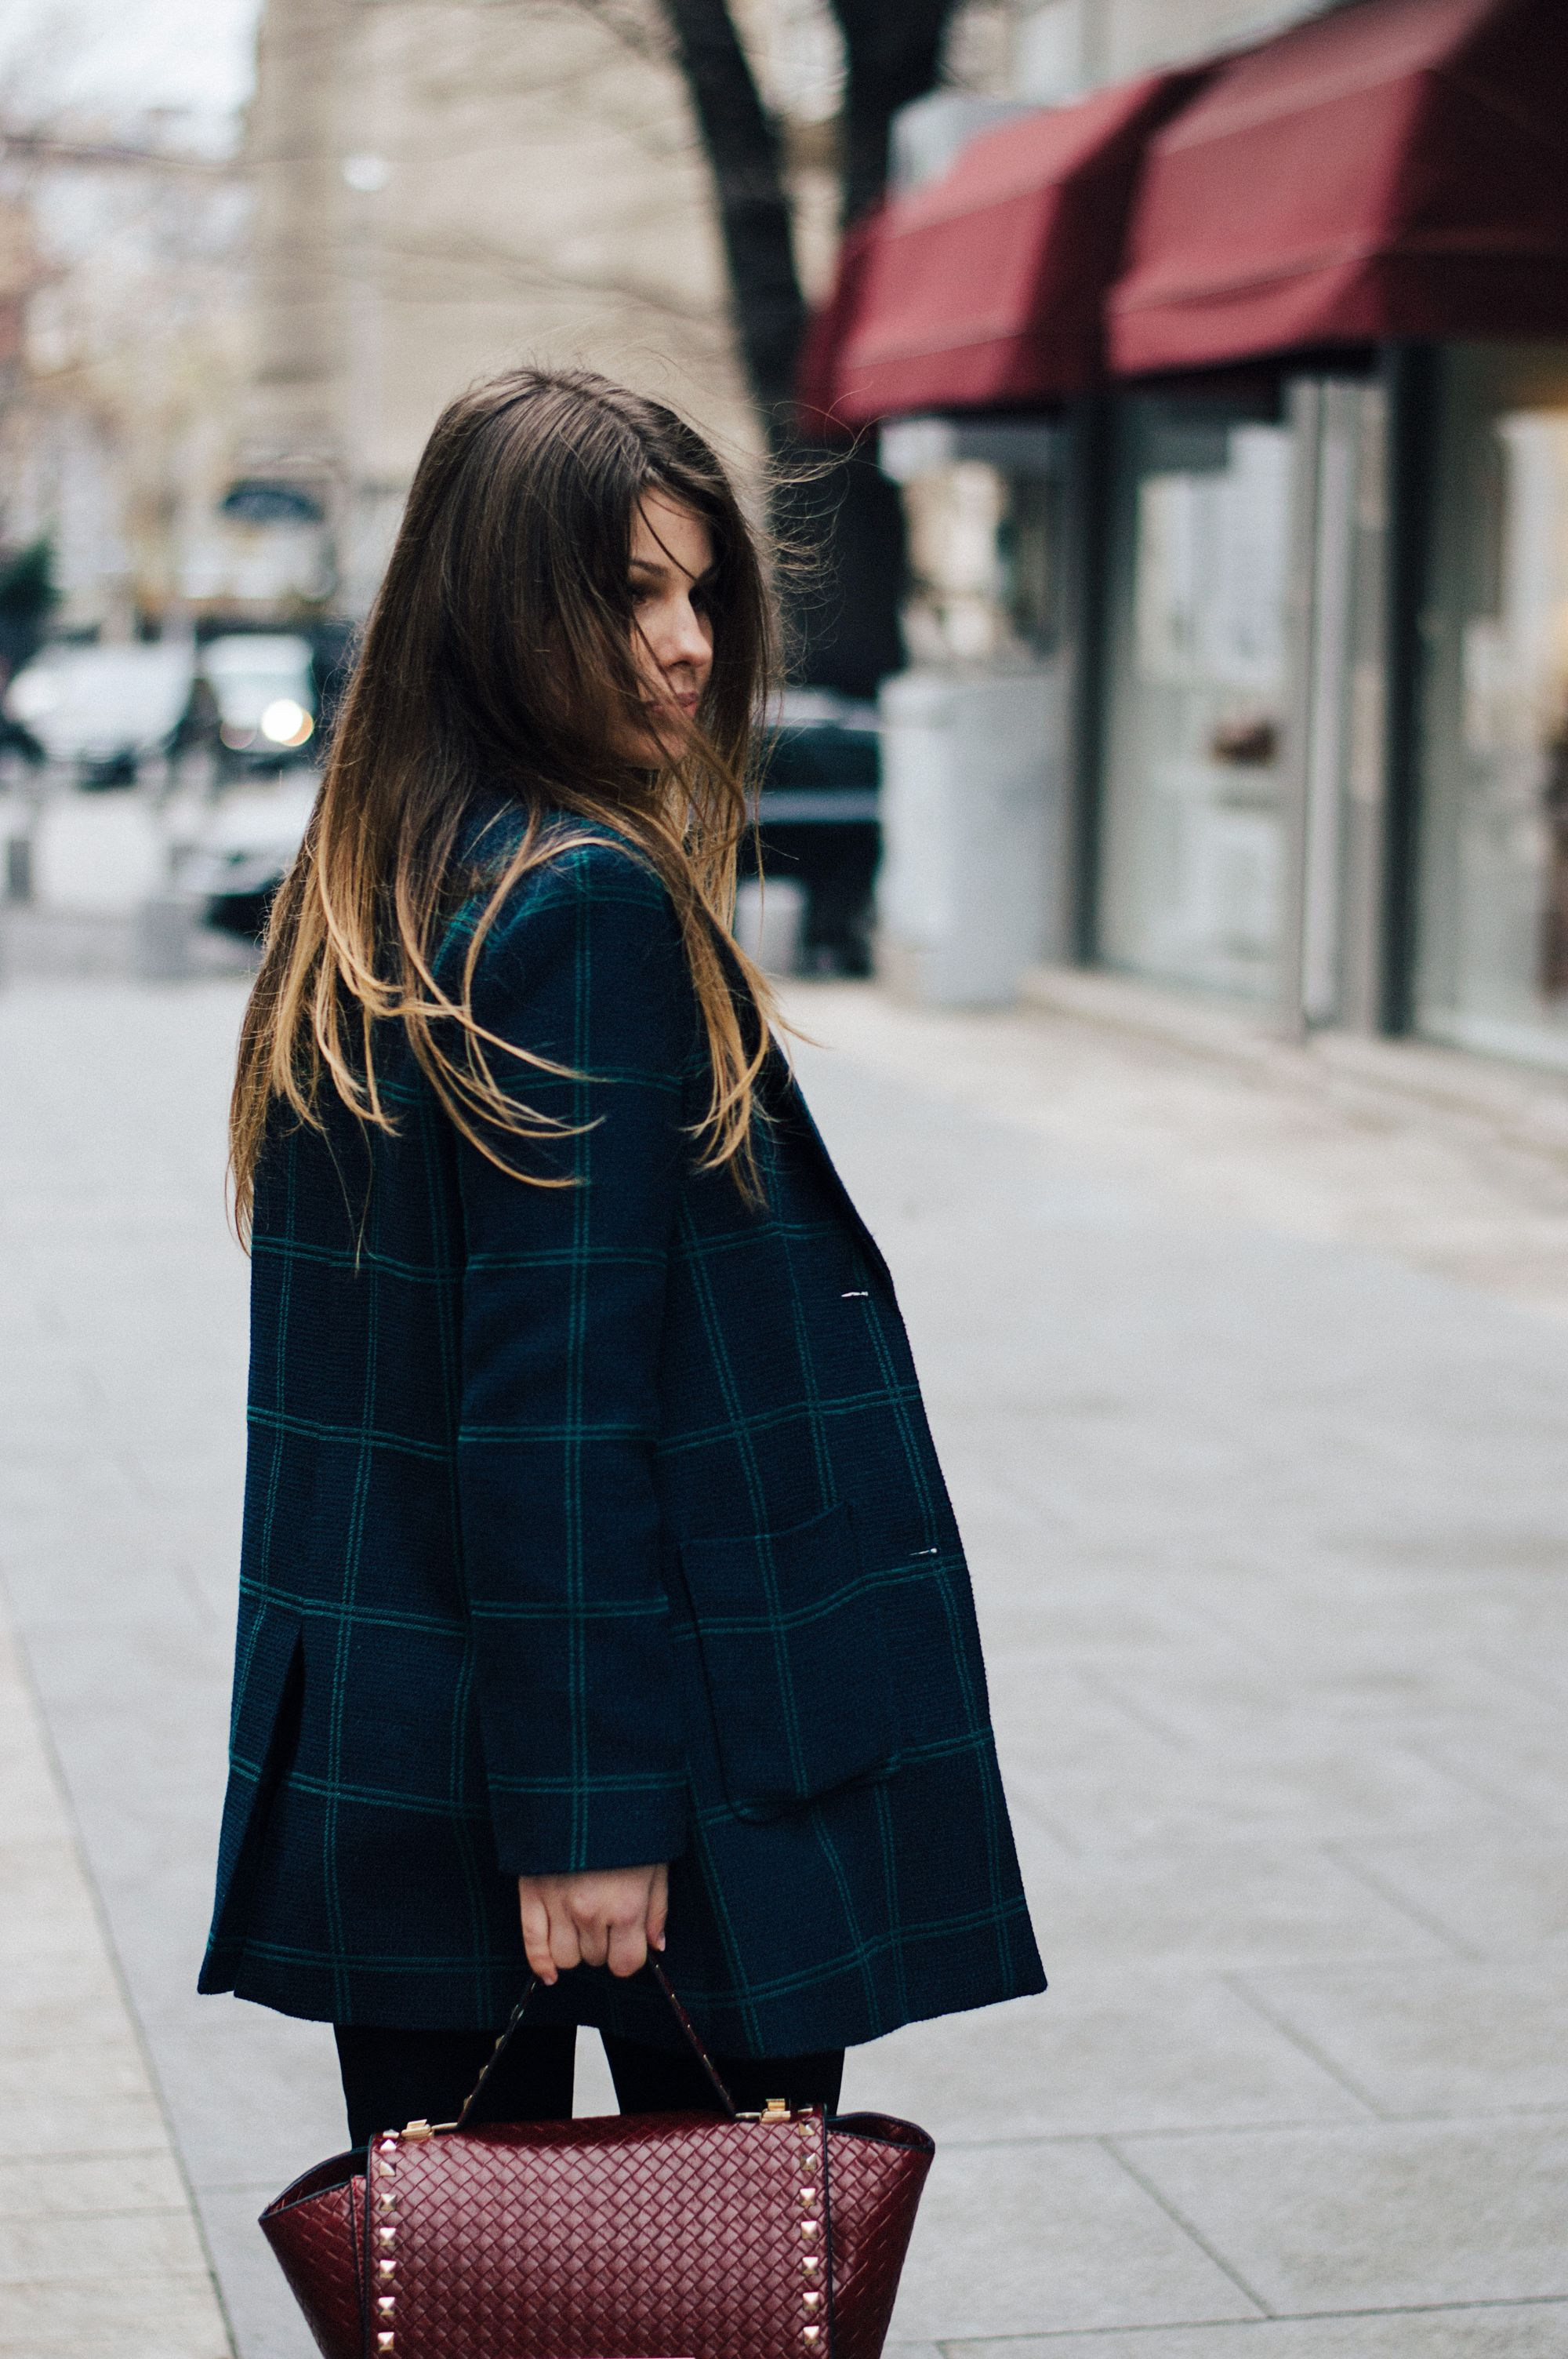 Winter Workwear Outfit Ideas